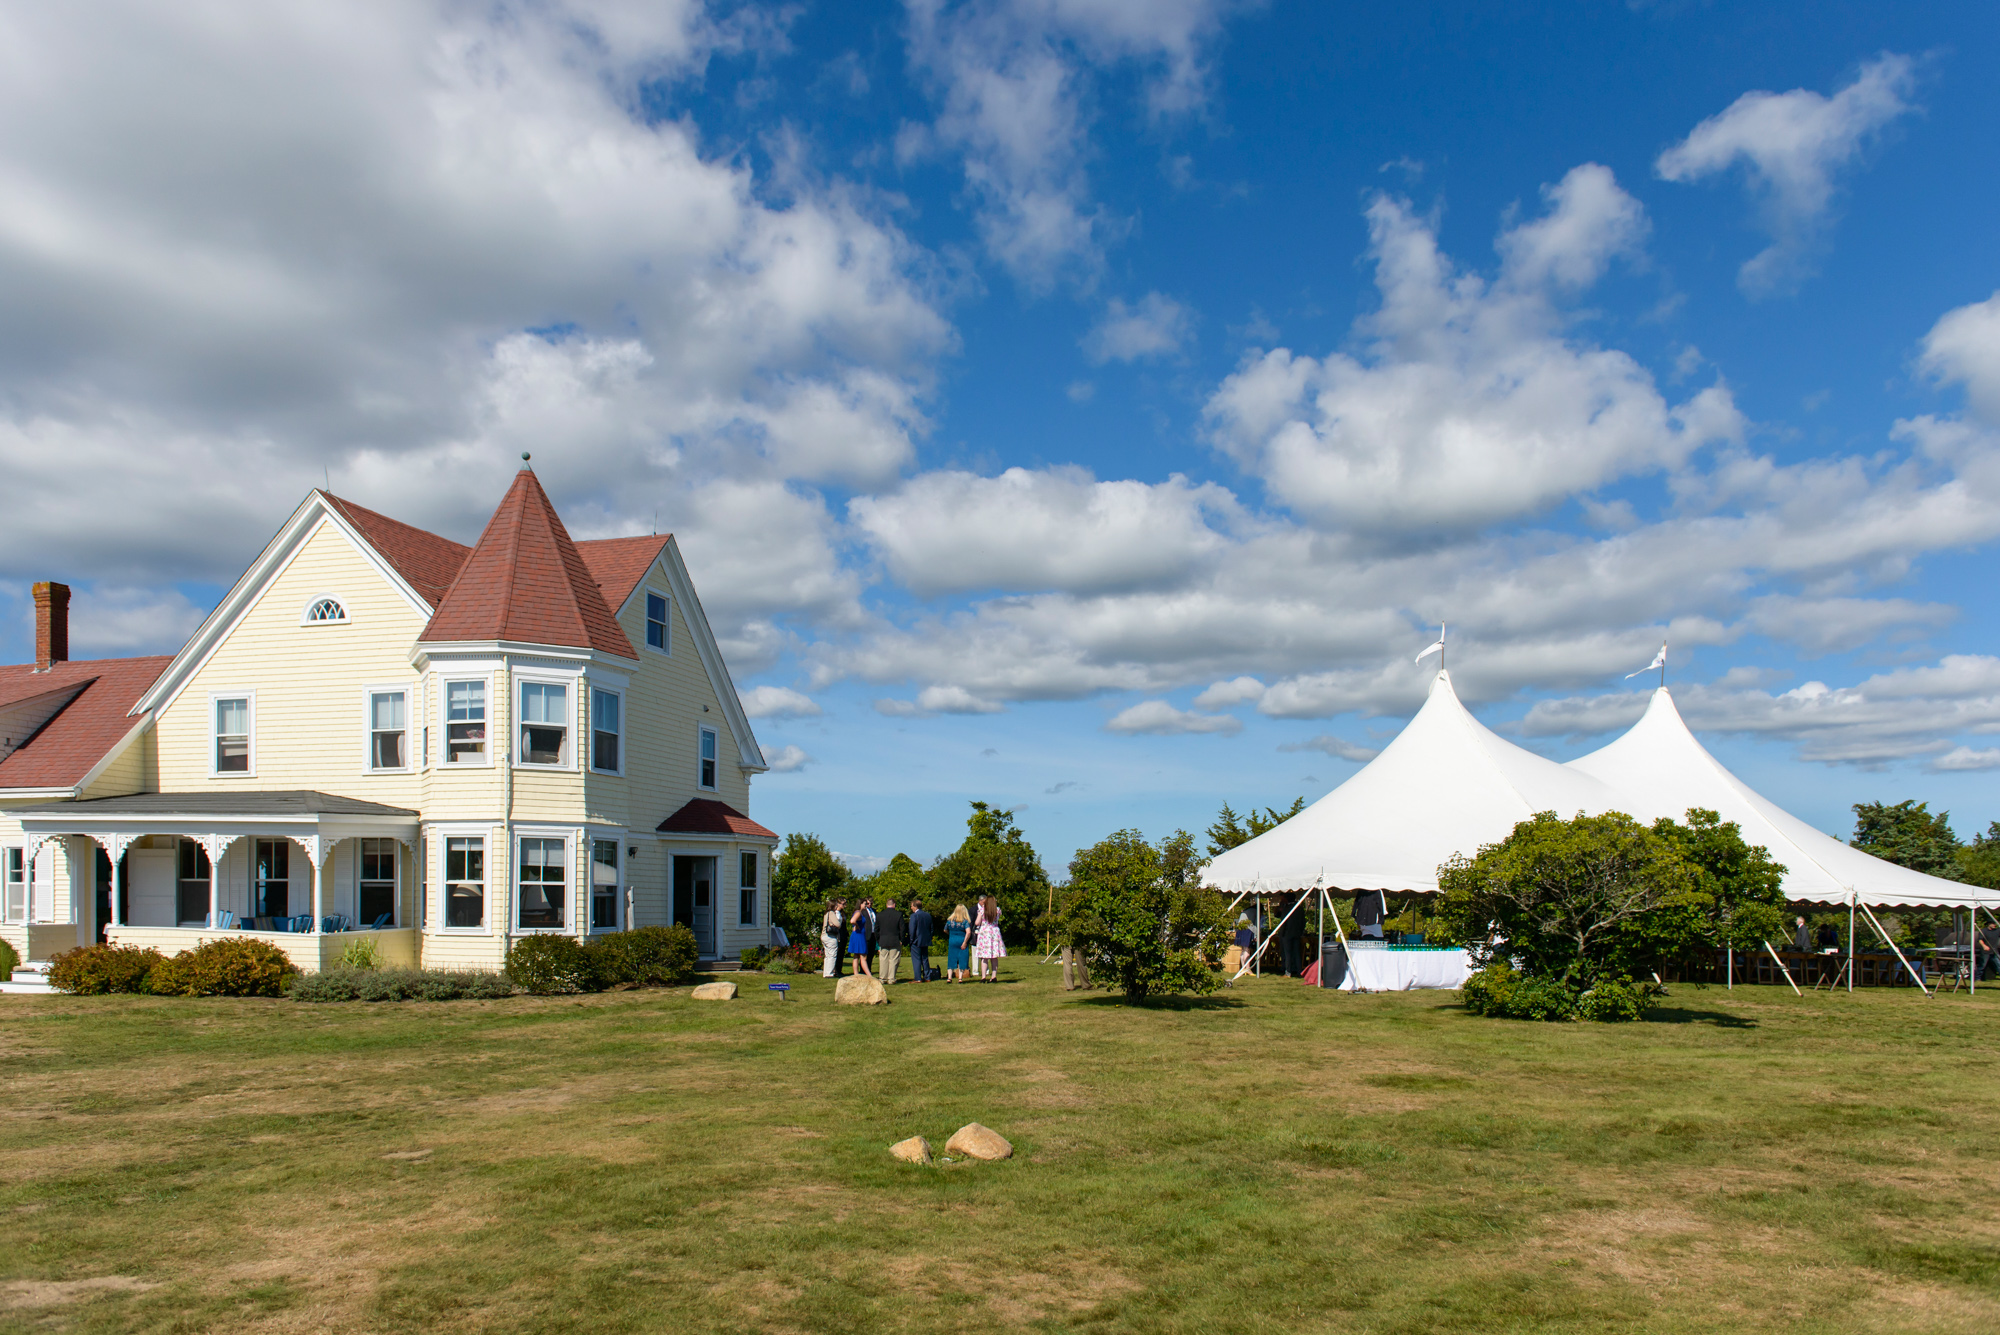 The Tower House in Chilmark martha's vineyard wedding venues photo by David Welch Photography